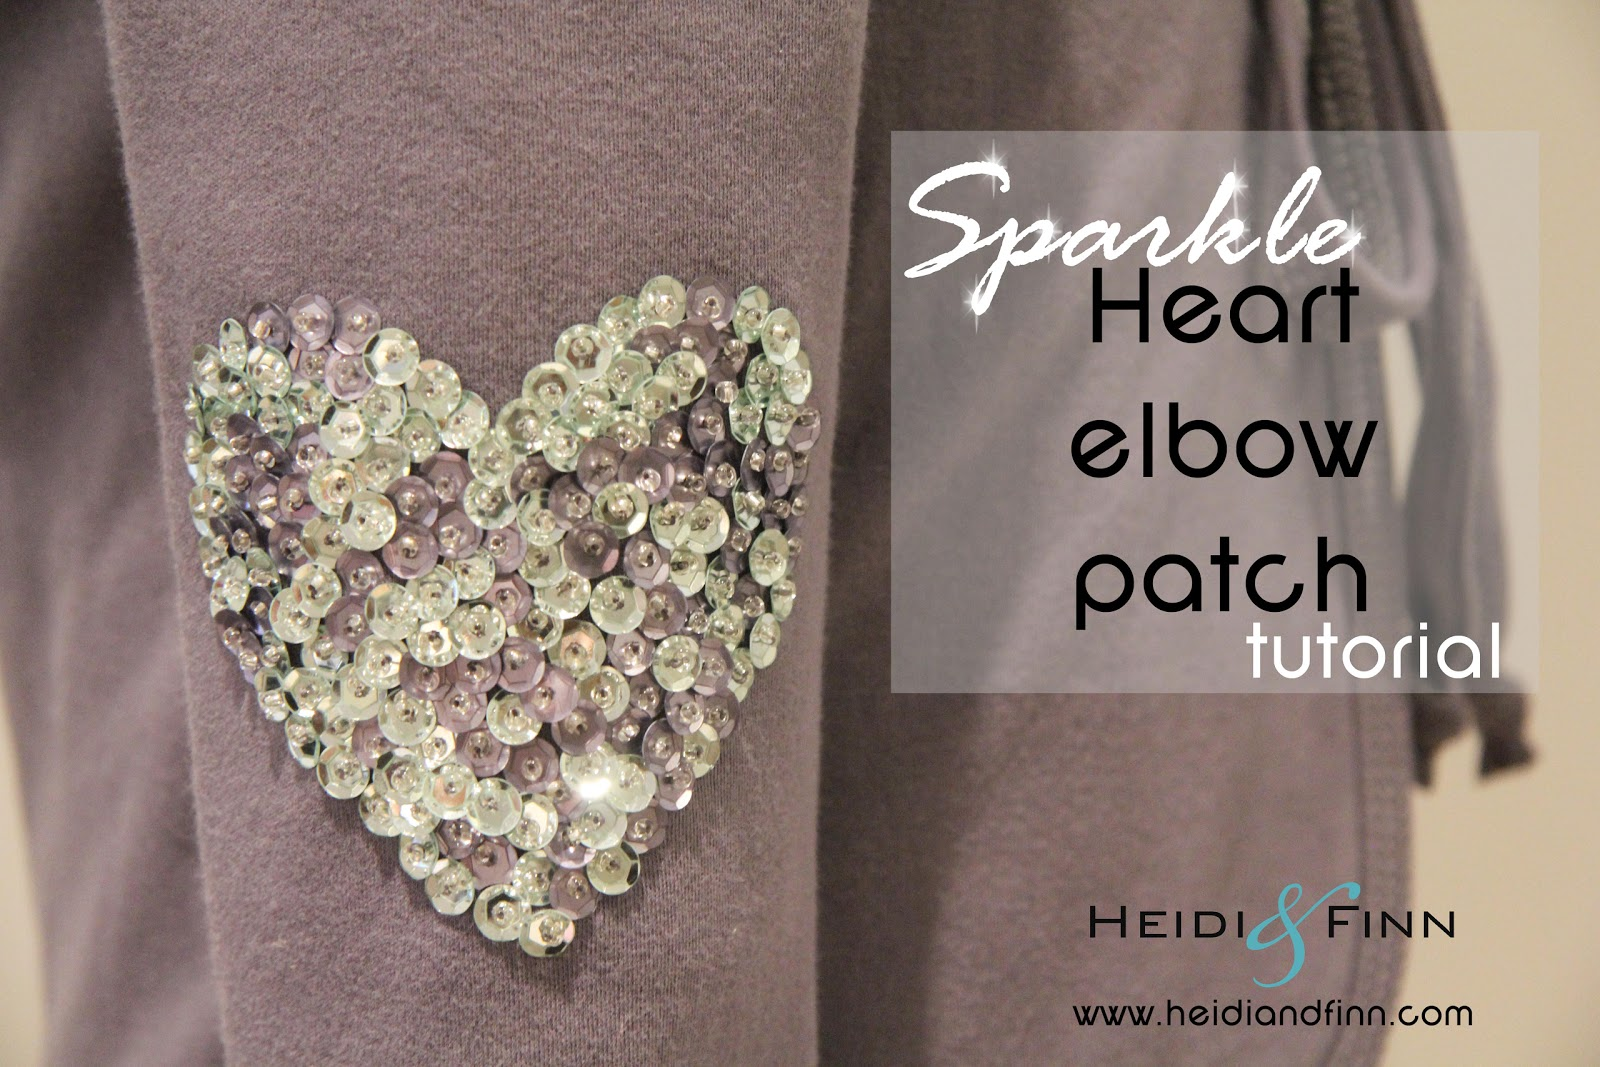 http://www.heidiandfinn.com/2014/01/sequin-heart-elbow-patch-tutorial.html